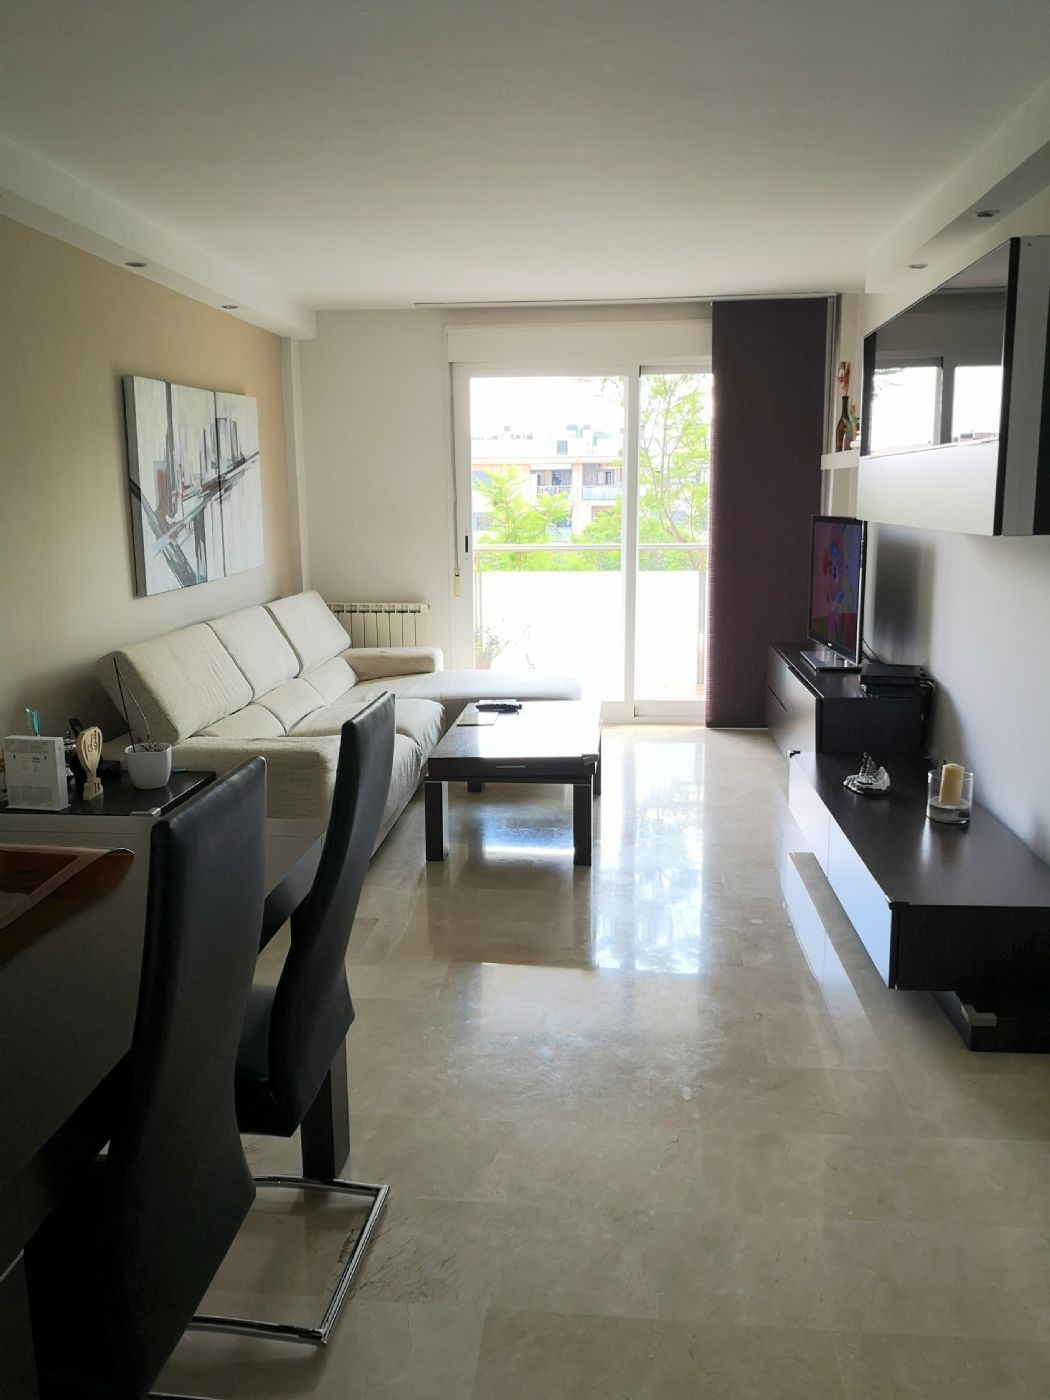 Appartamento in Carrer xesc forteza-actor, 2. Vendo piso